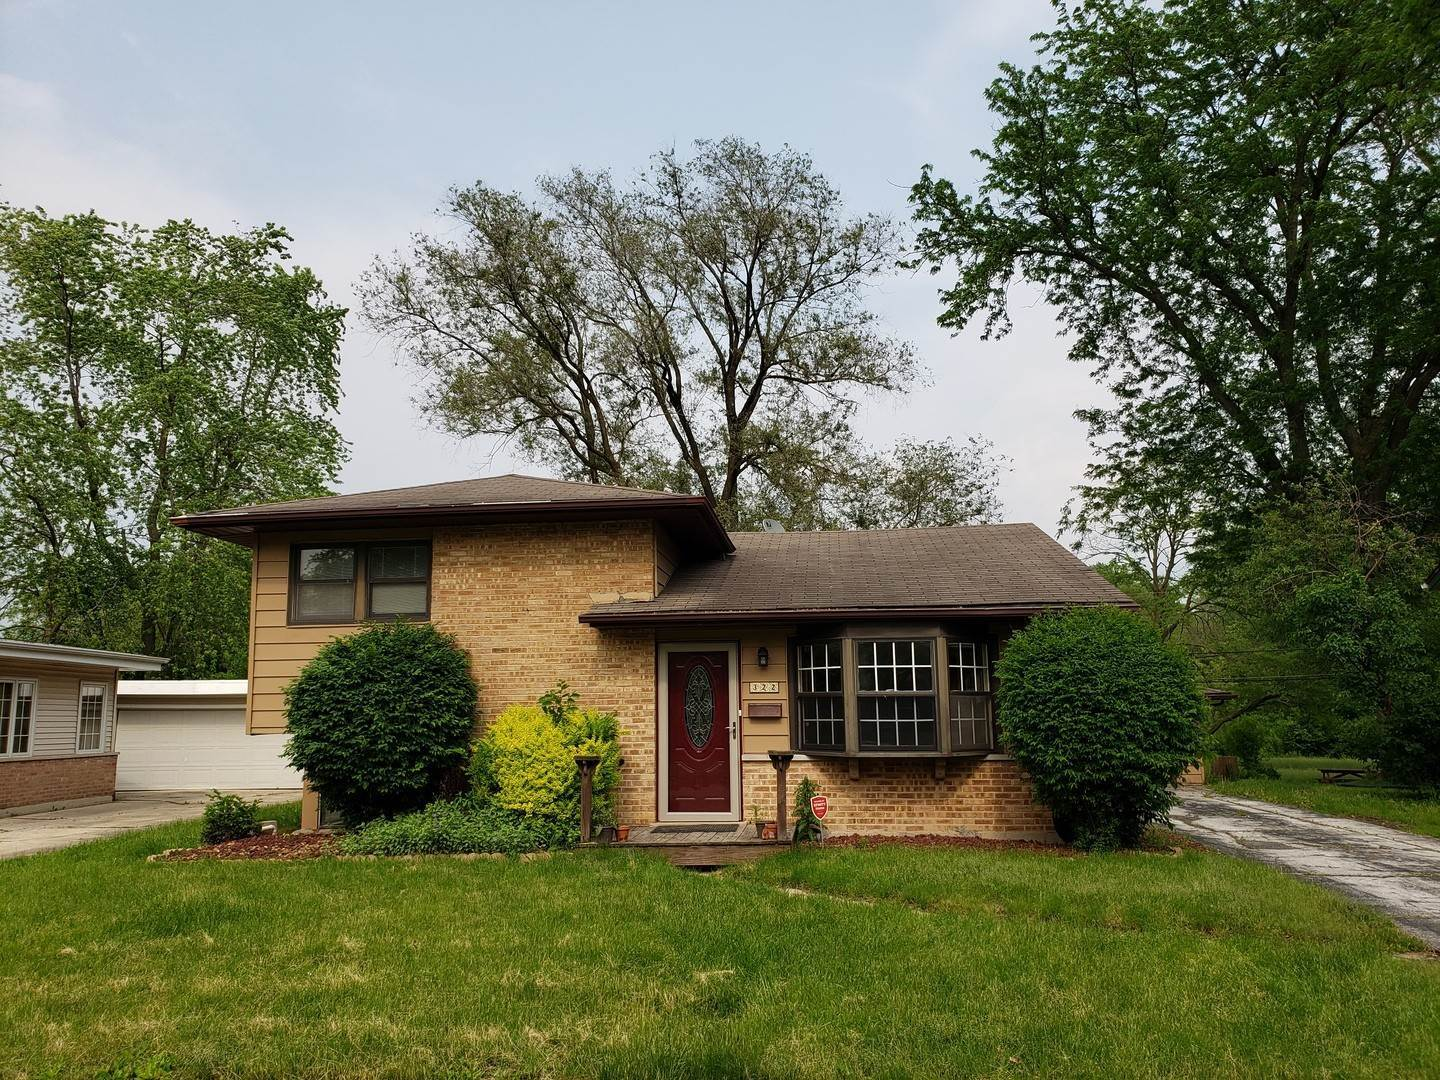 Single Family Homes for Sale at 322 Winnebago Street Park Forest, Illinois 60466 United States